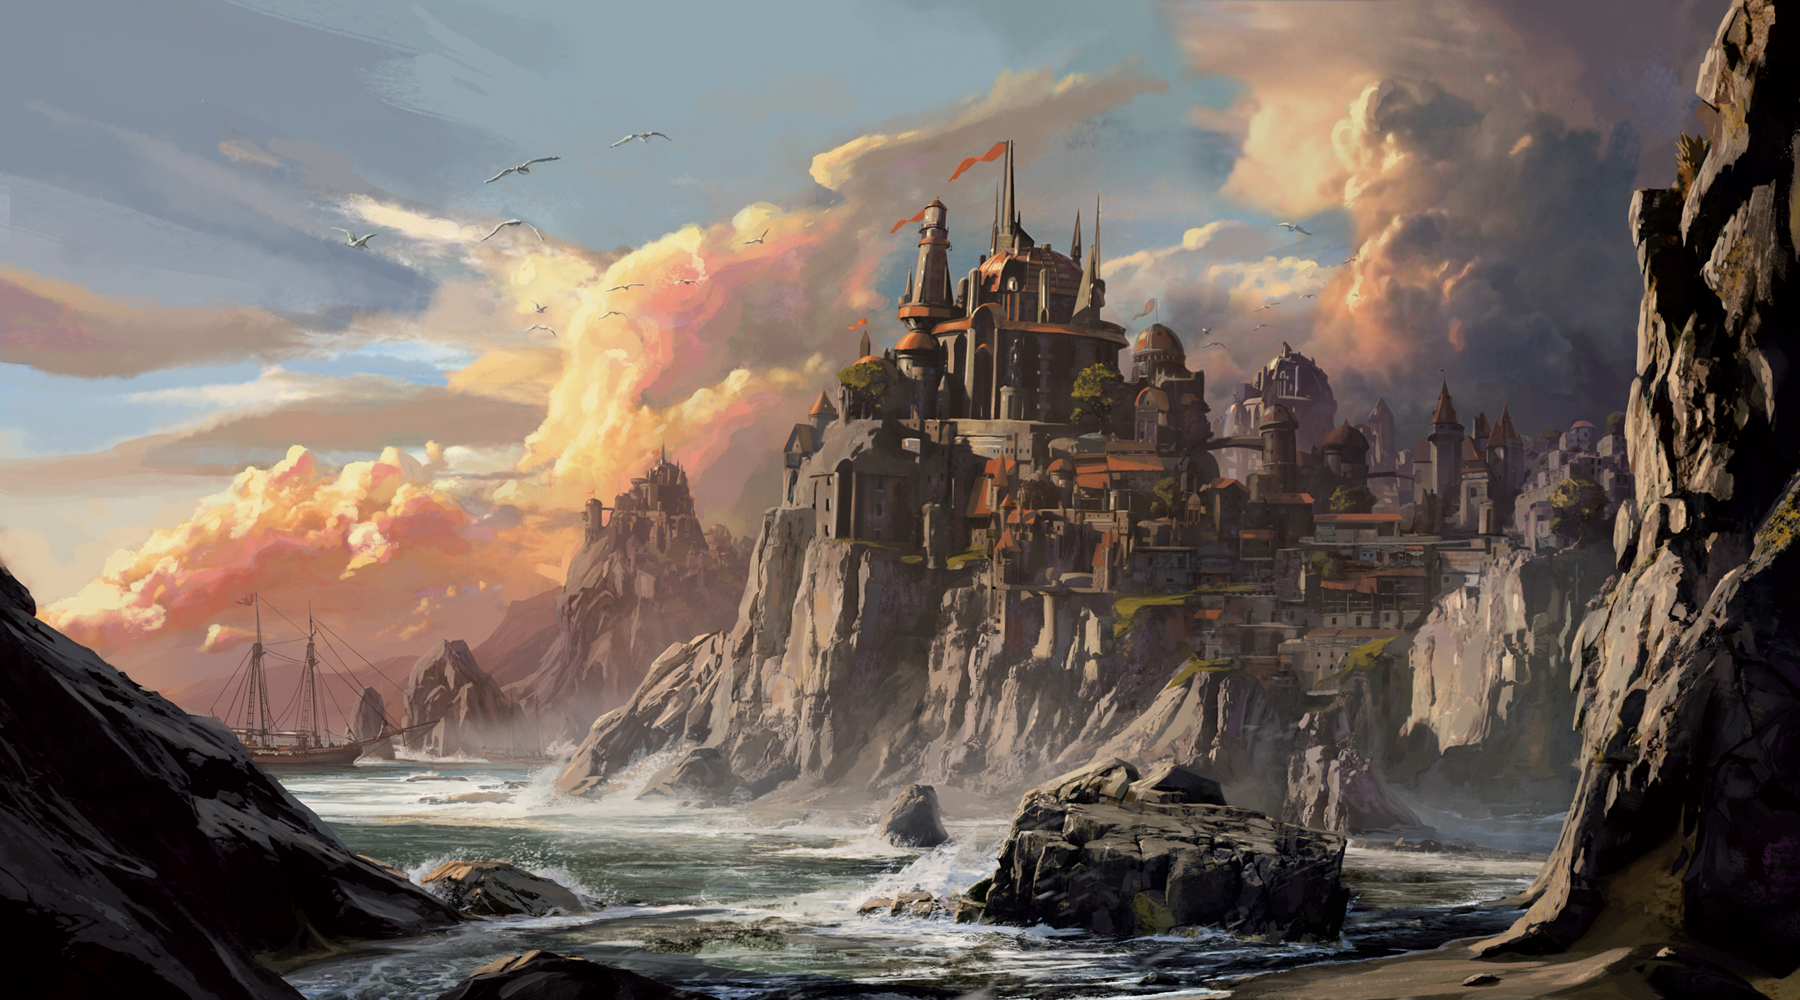 An image of a Dungeons and Dragons coastal landscape